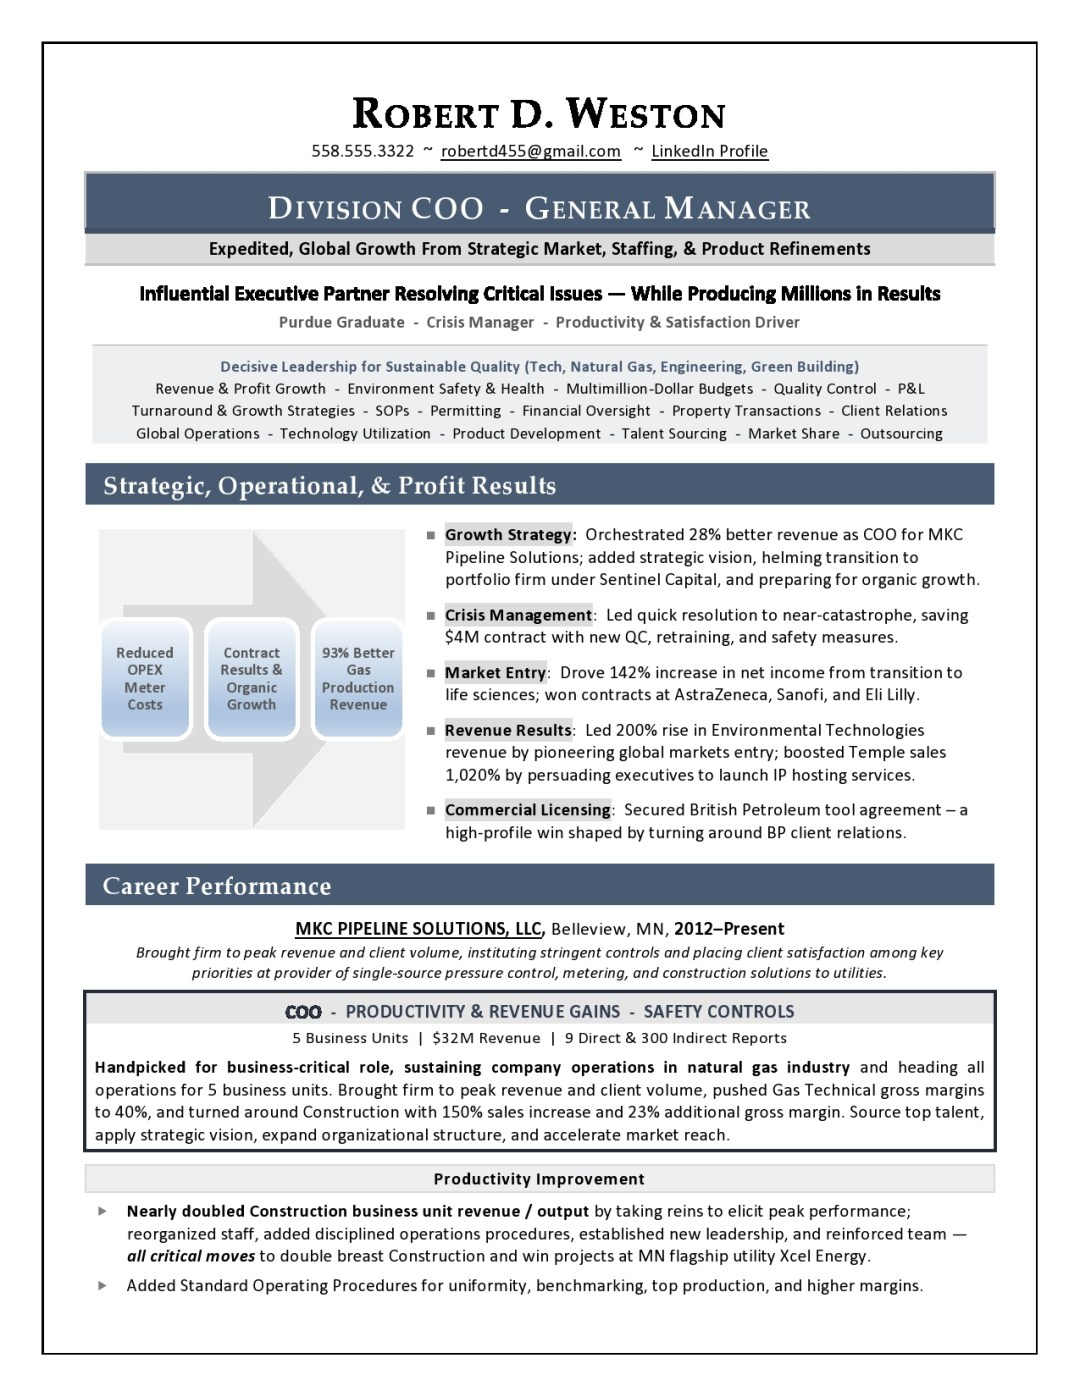 Global International CEO Resume Sample Page 1